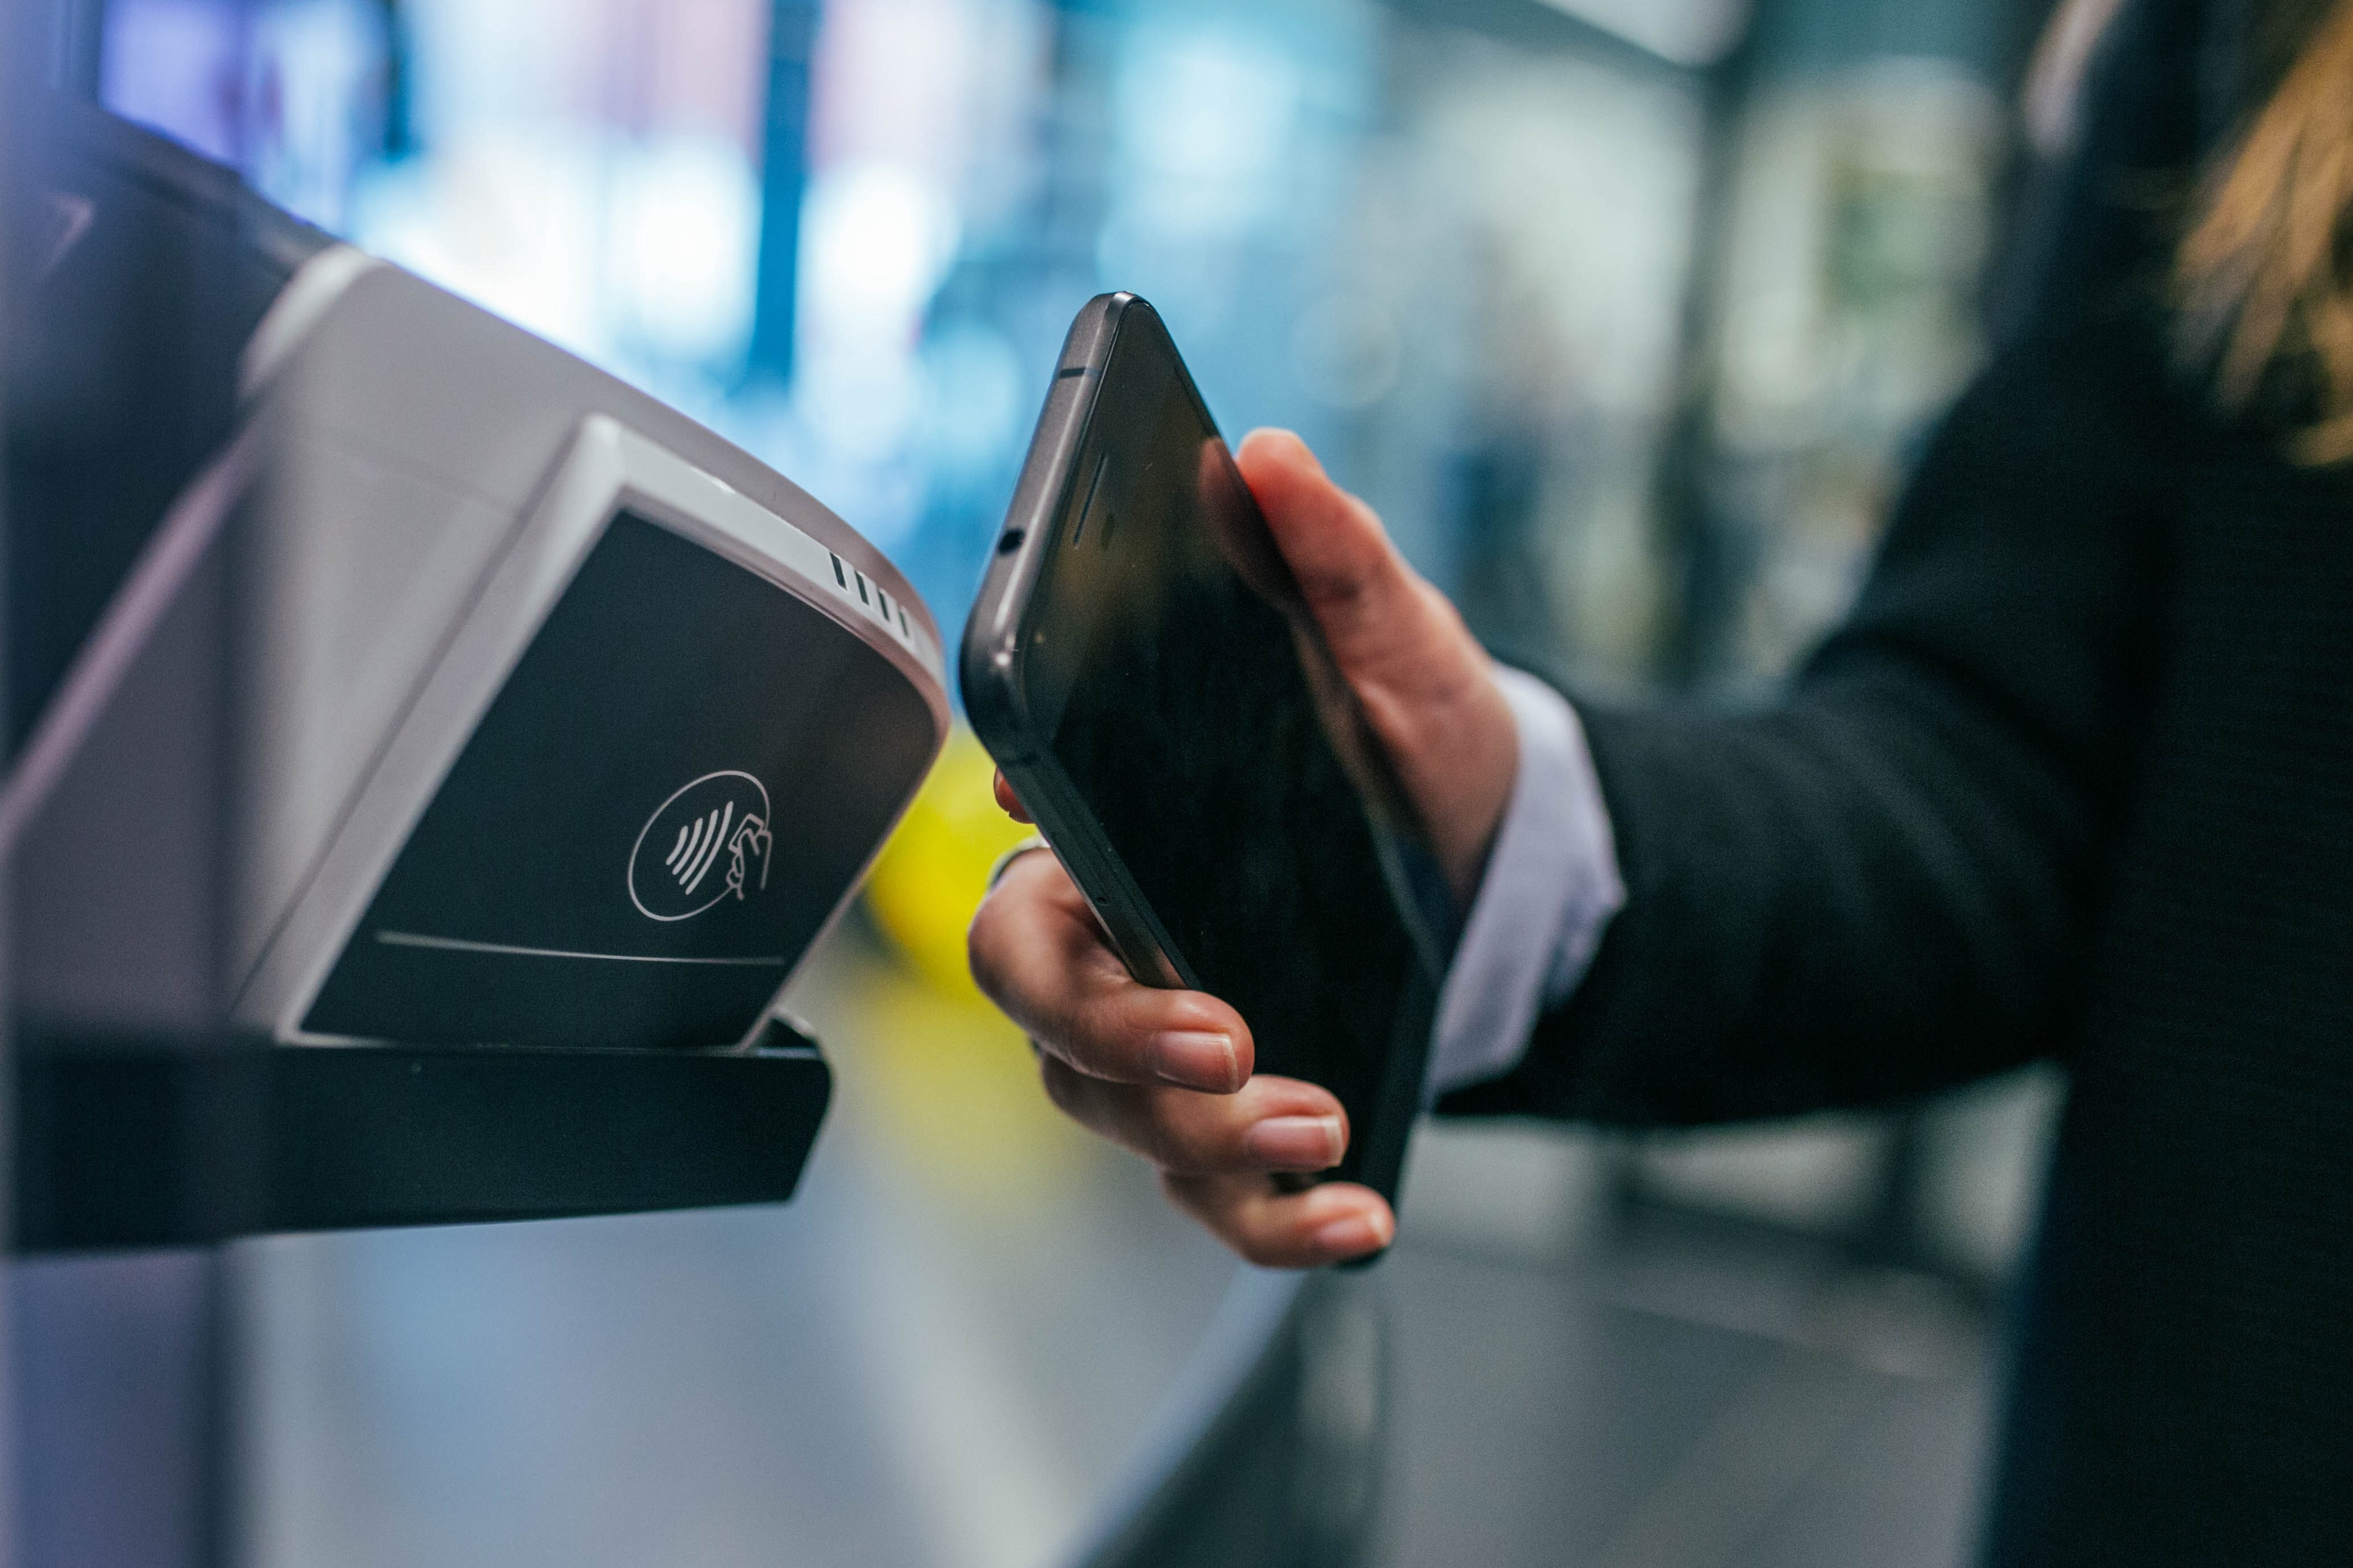 The Long-Lasting Impact of COVID-19 on Digital Payments